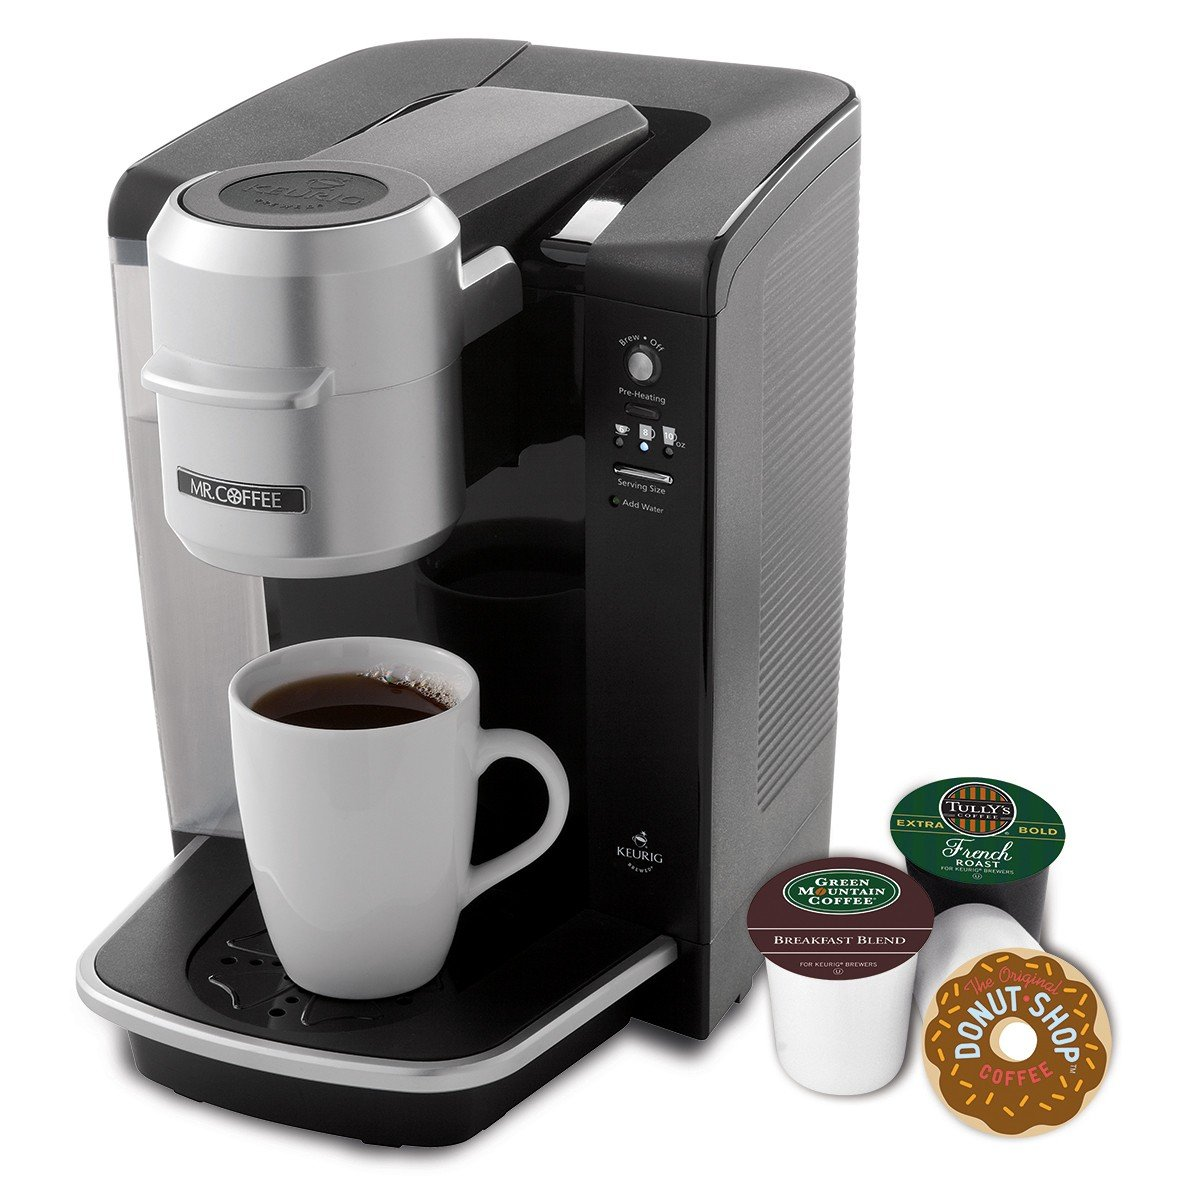 K Cup Coffee Maker Ratings : Keurig K-Cup Home Brewer Review